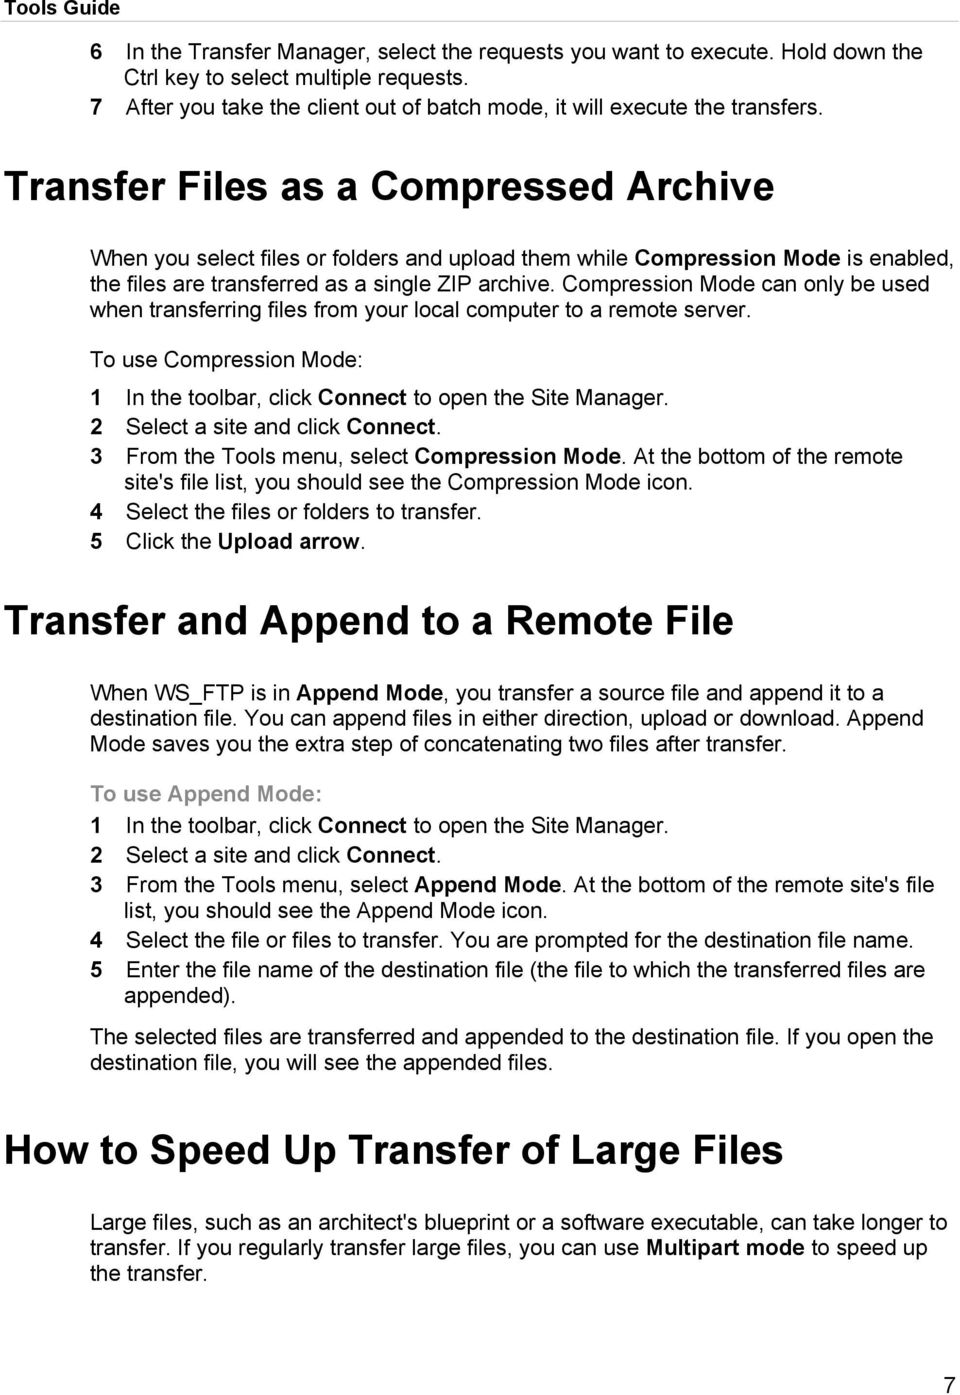 Transfer Files as a Compressed Archive When you select files or folders and upload them while Compression Mode is enabled, the files are transferred as a single ZIP archive.